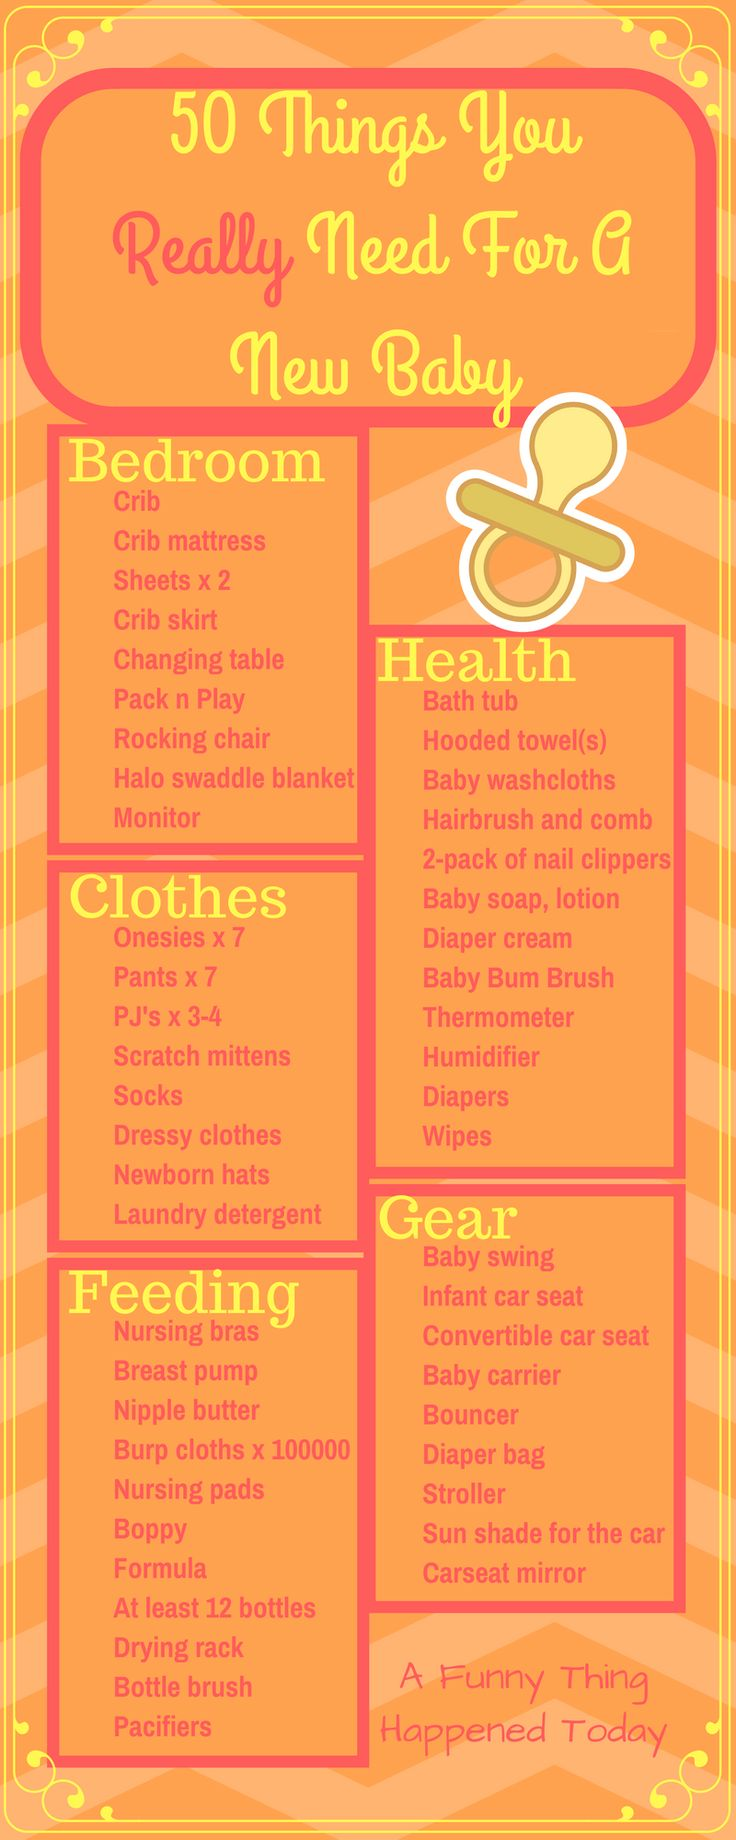 A Funny Thing Happened Today | What do you really need for a new baby? Bedroom | Health | Gear | Clothes | Feeding | Plus the 10 things you don't need.